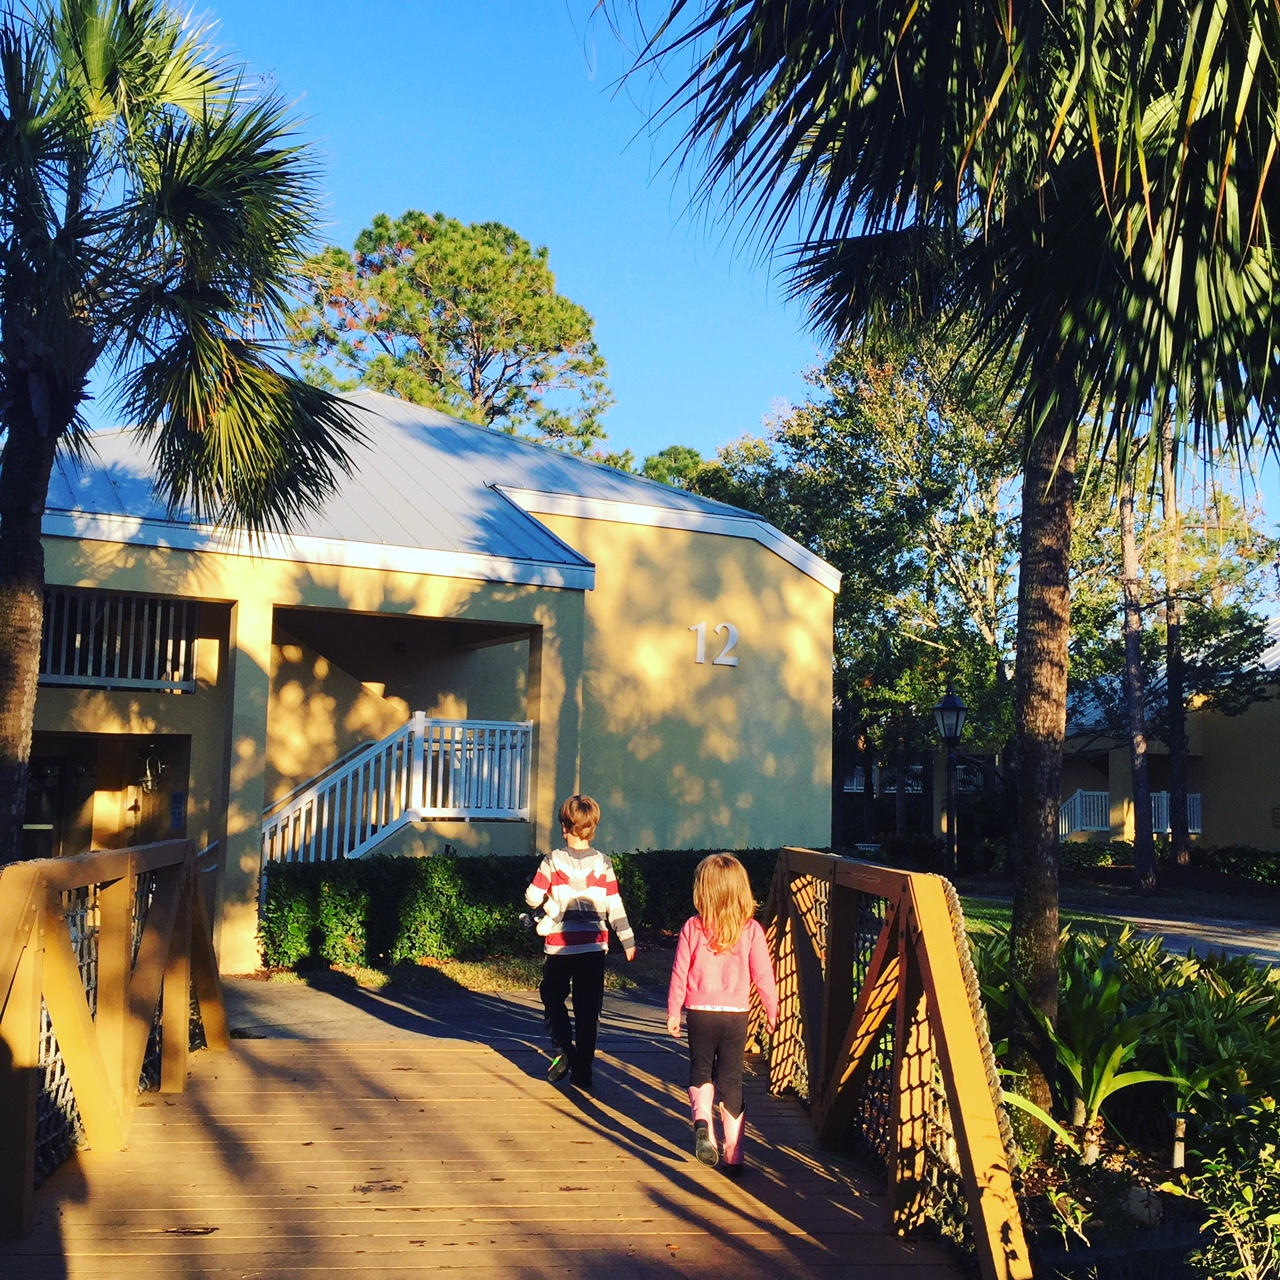 Wyndham Orlando Resort | International Drive Orlando hotels | Budget friendly hoitels Orlando | family hotels in Orlando Florida | Florida theme park hotels | Wyndham Idrive | hotels with kids | acupful family travel blog